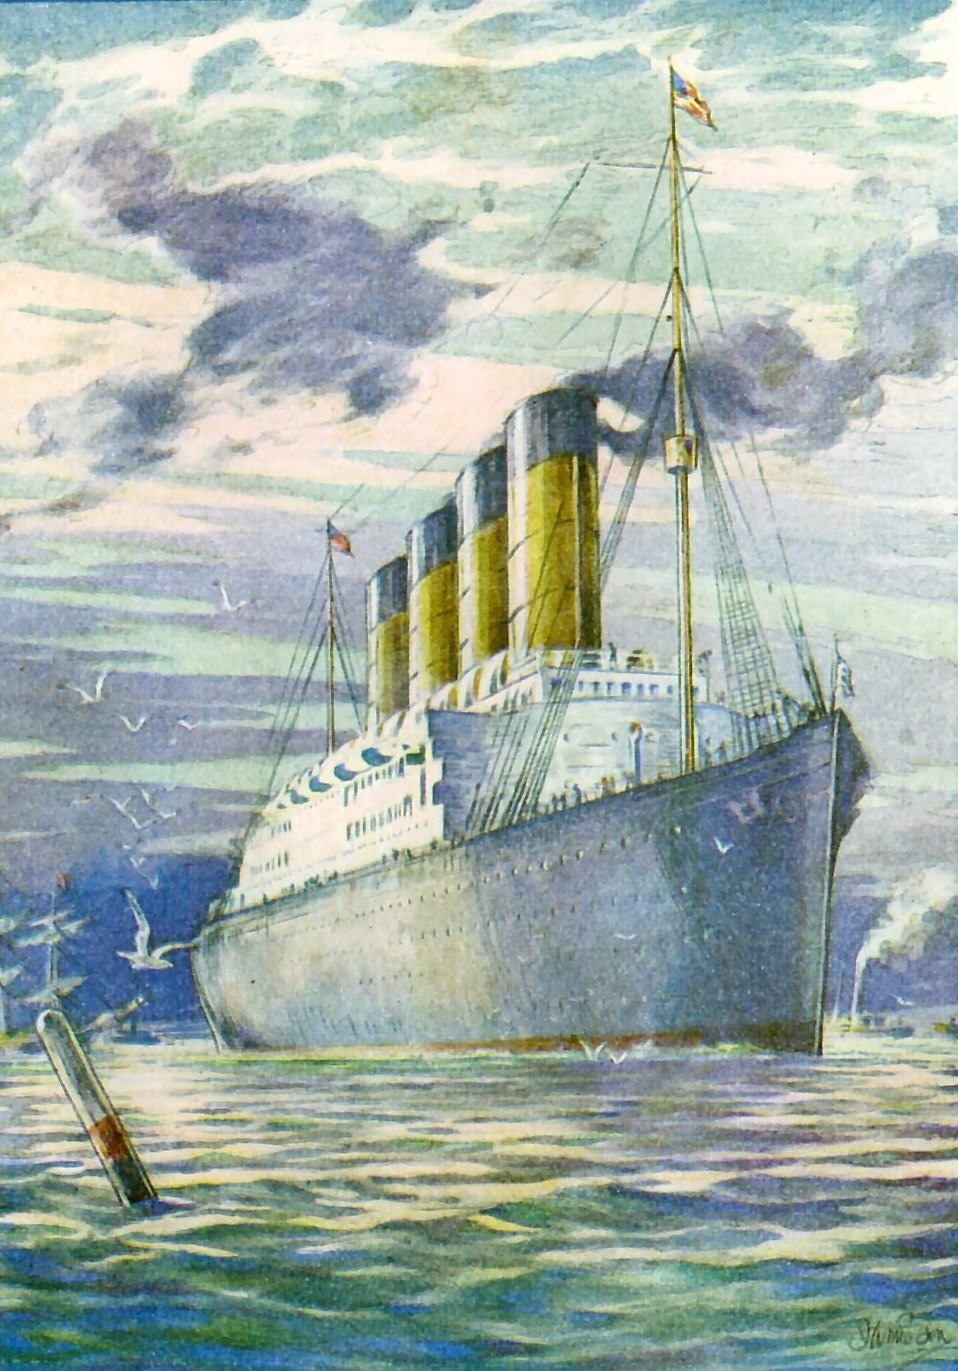 Illustration of a large passenger steamer ship on the water : Free Stock Photo